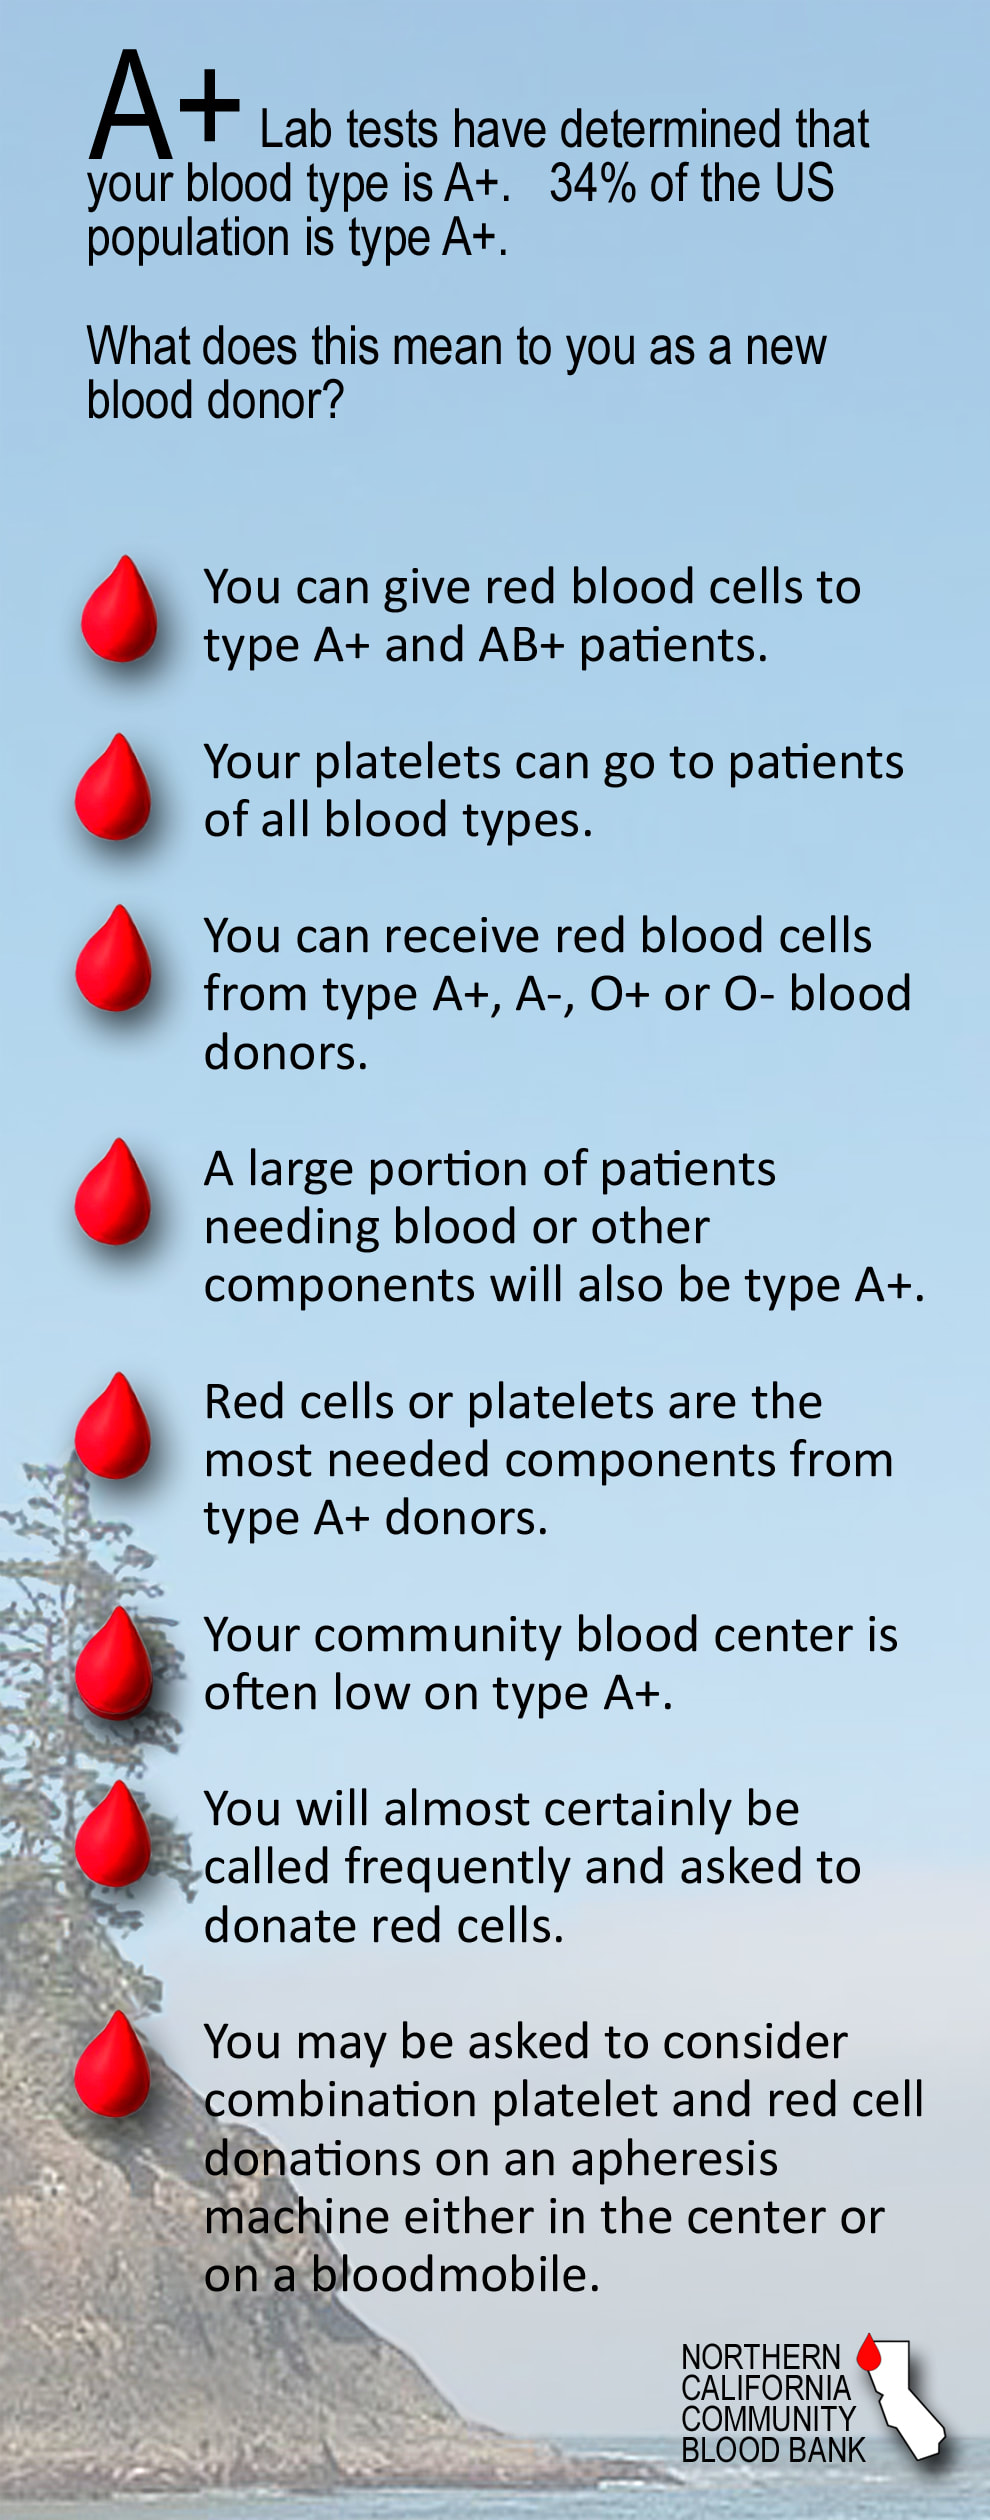 Human Blood Types - NORTHERN CALIFORNIA COMMUNITY BLOOD BANK